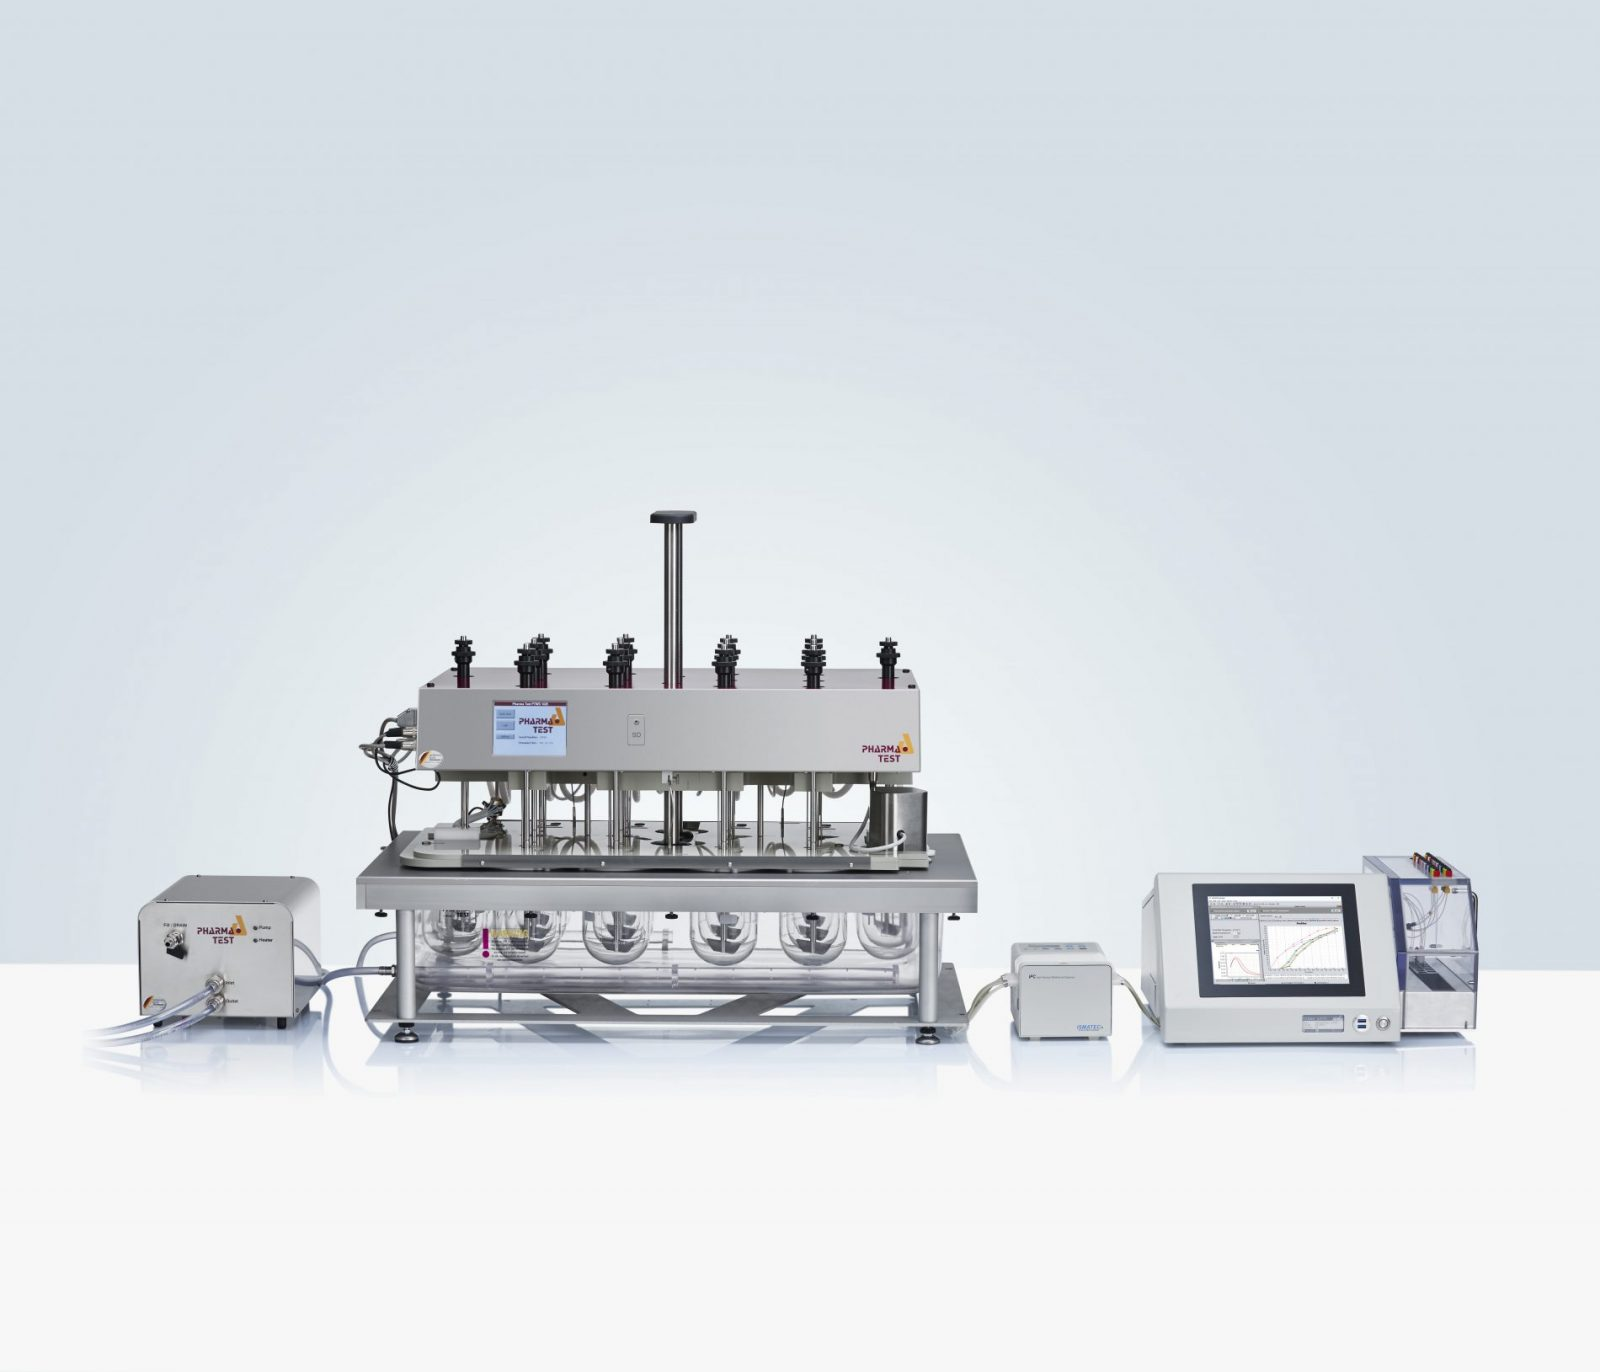 ADS-L Closed Loop Online System: for an online automated system it is possible to use the J&M TIDAS® L UV/VIS spectrometer with a 16-position multiple-cell-changer. The spectrophotometer and pump of such a system is controlled by the powerful WinDiss ARGUS dissolution software running on the integrated PC of the TIDAS® L spectrometer.